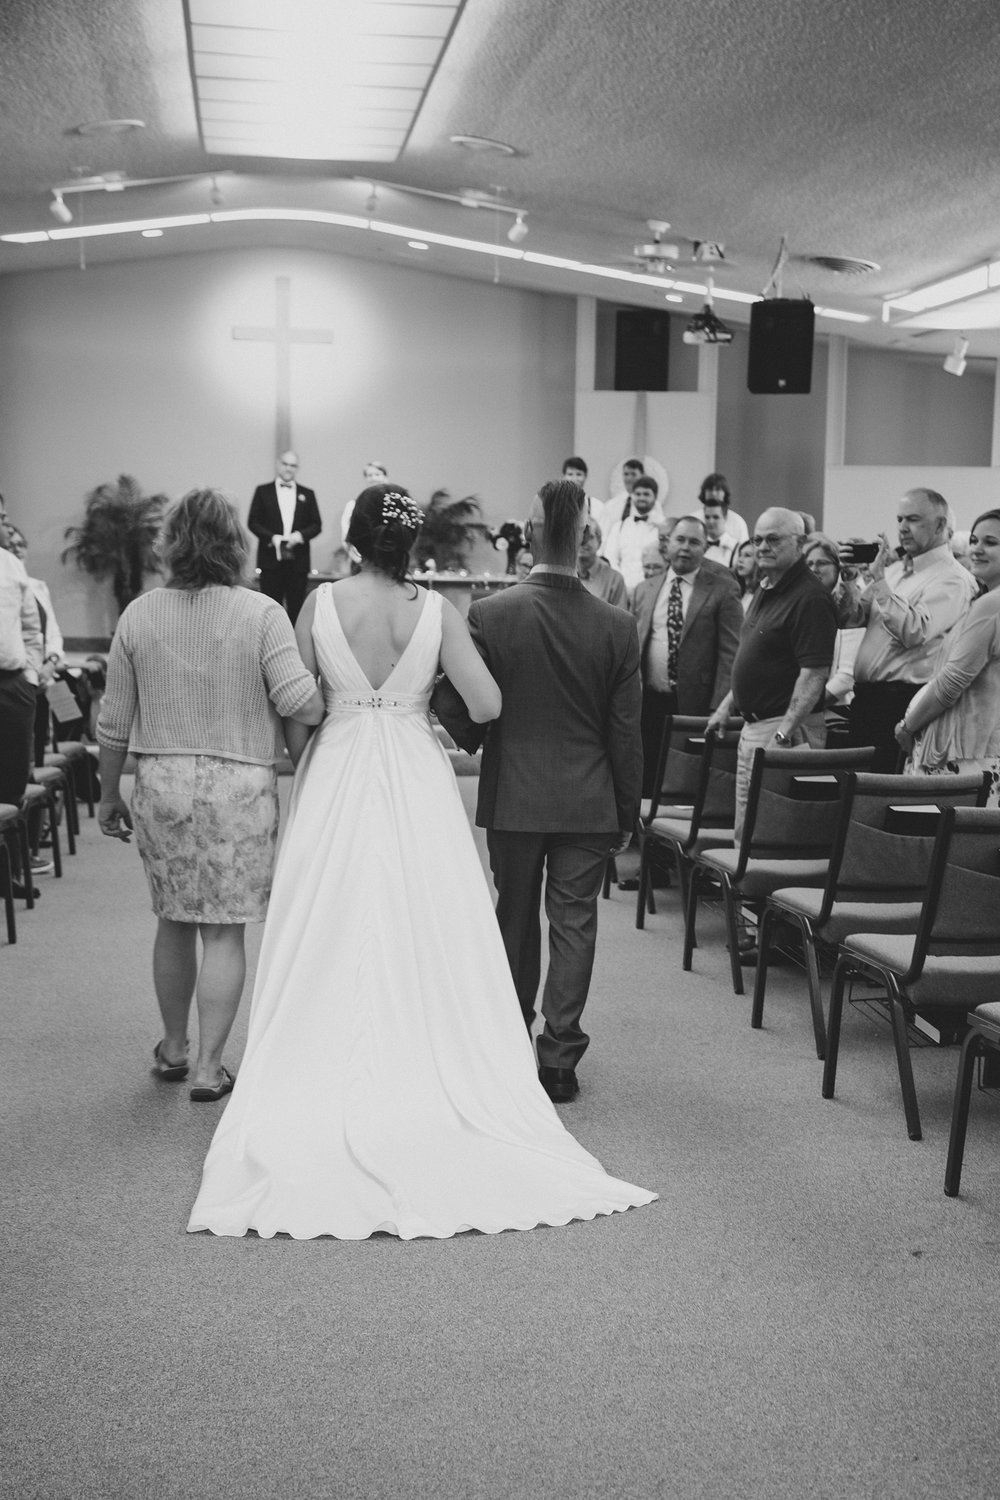 Tri Cities Wedding Photographer_Karis and Adrienne_Church wedding_Grace United Reformed Church 4 Bride walking in